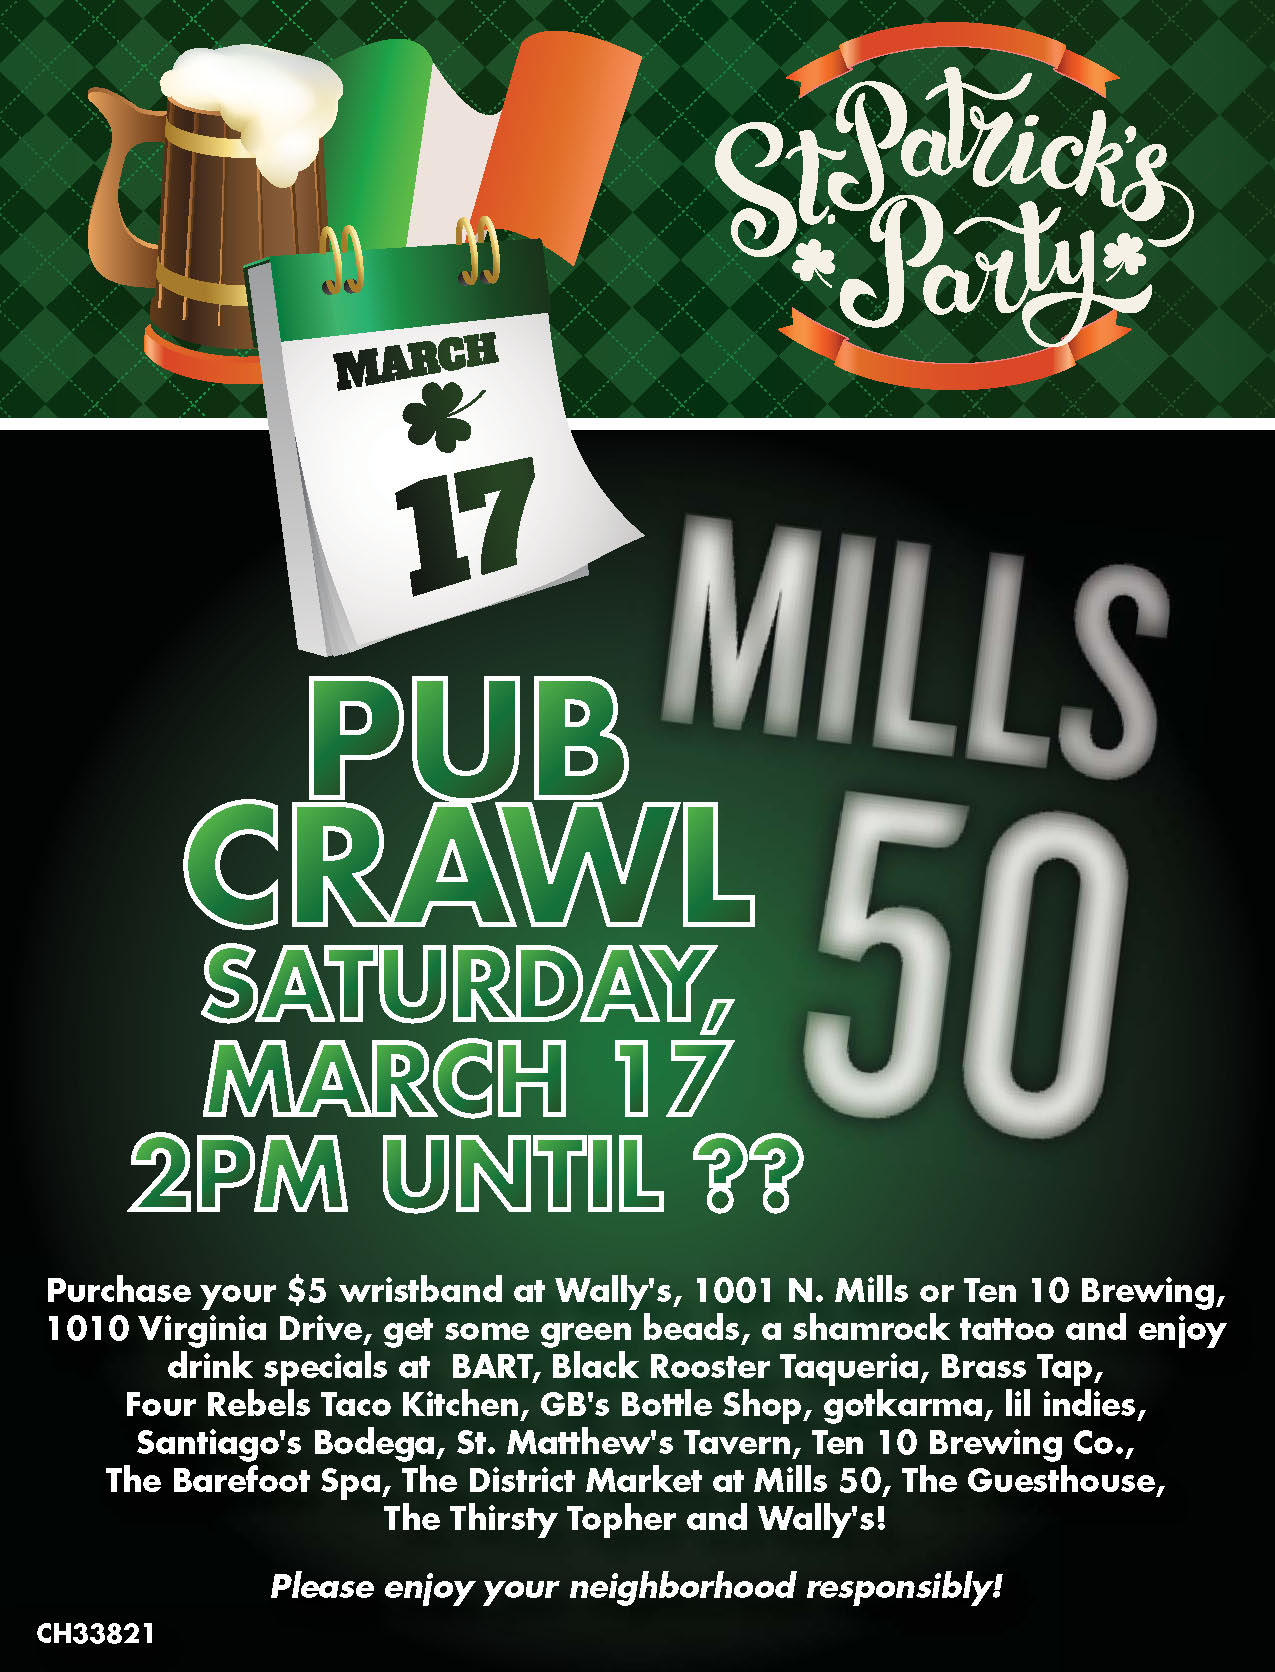 St Patrick's Day Pub Crawl revised